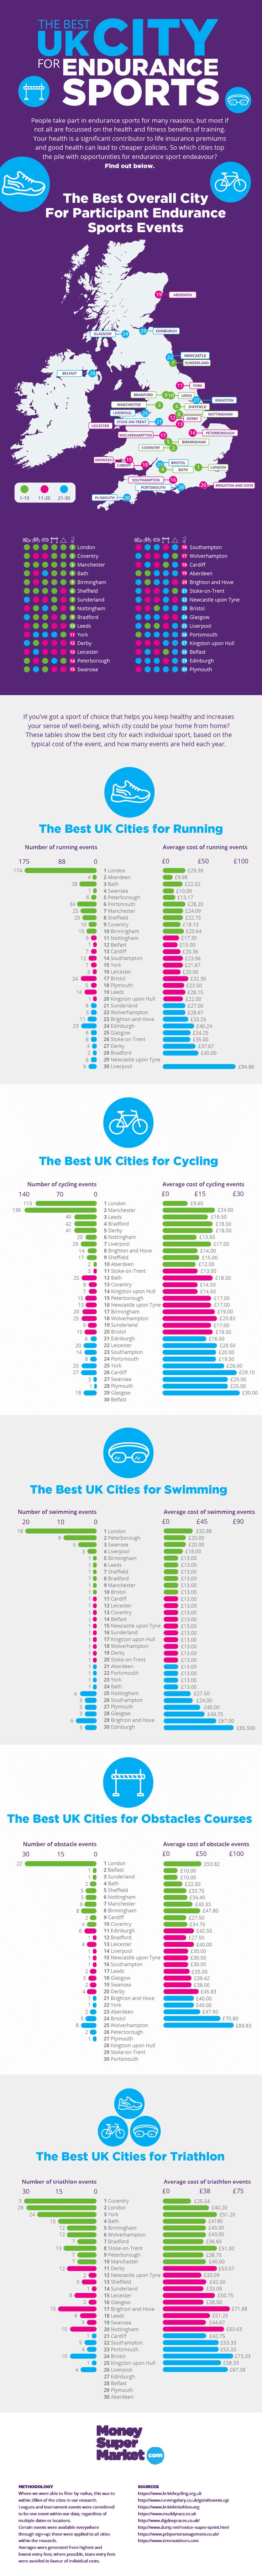 People take part in endurance sports for many reasons, but most if not all are focused on the health and fitness benefits of training. Your health is a significant contributor to life insurance premiums and good health can lead to cheaper policies. So which UK cities top the pile with opportunities for endurance sport endeavor? Find out in the following infographic by MoneySuperMarket.